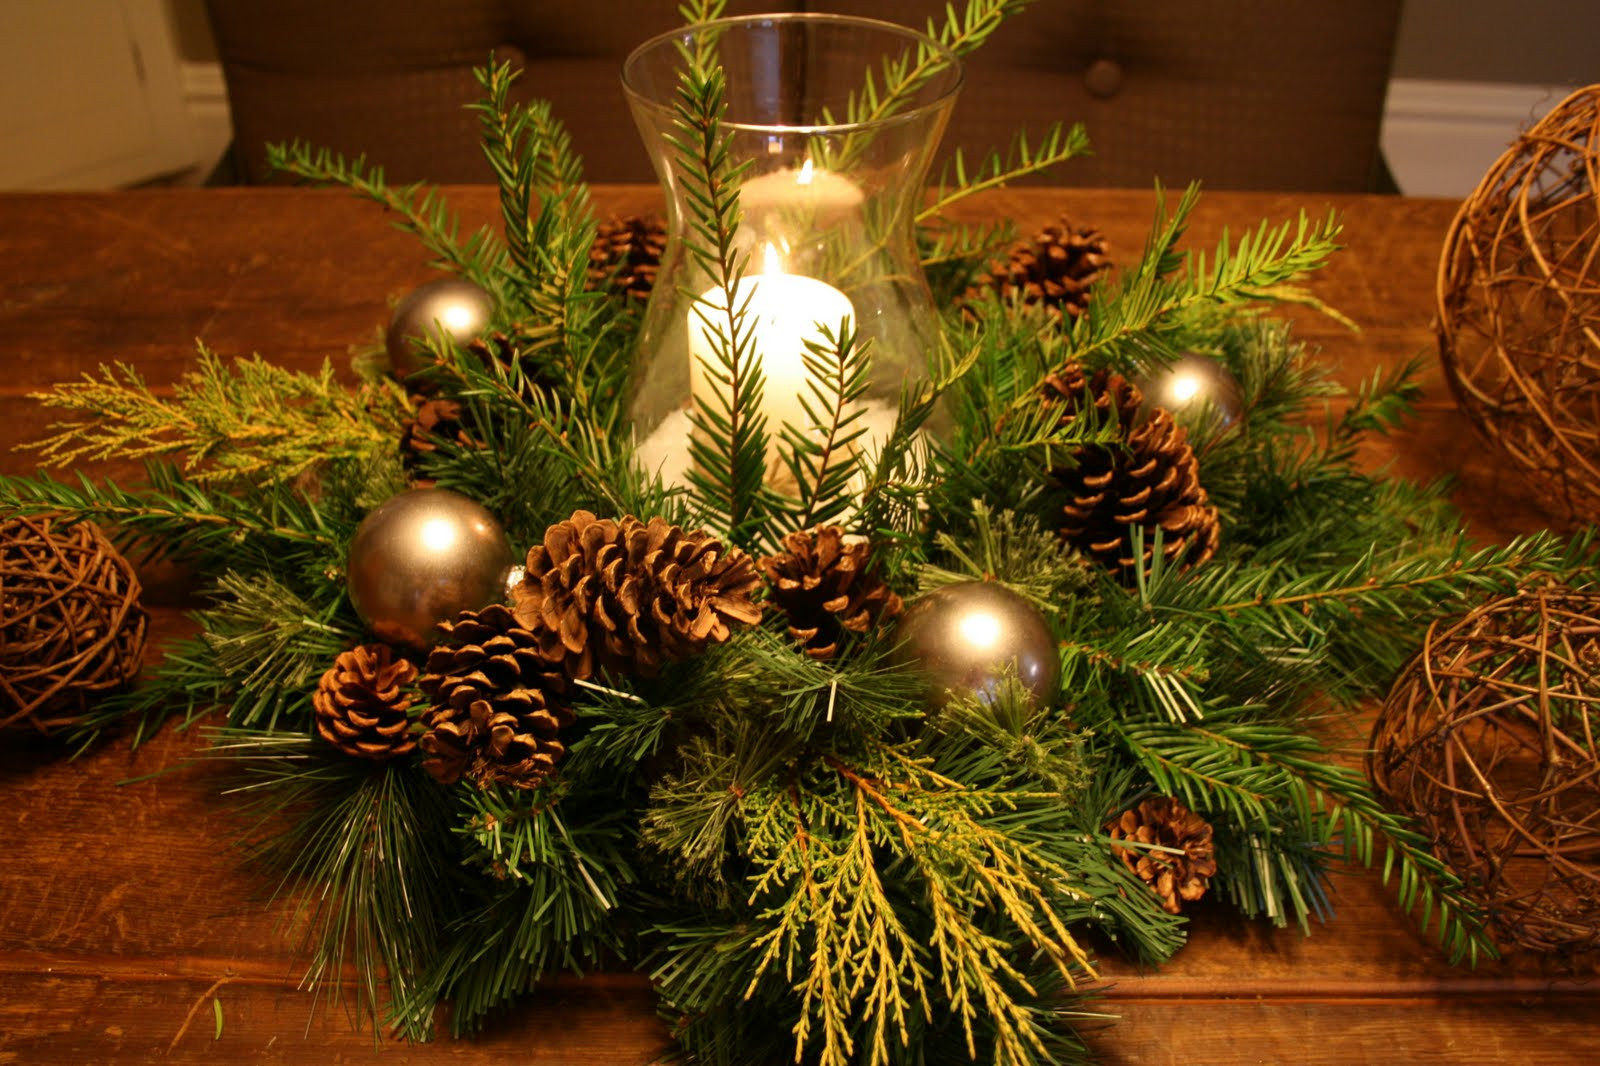 Best ideas about DIY Christmas Centerpieces . Save or Pin 23 Christmas Centerpiece Ideas That Will Raise Everybody's Now.